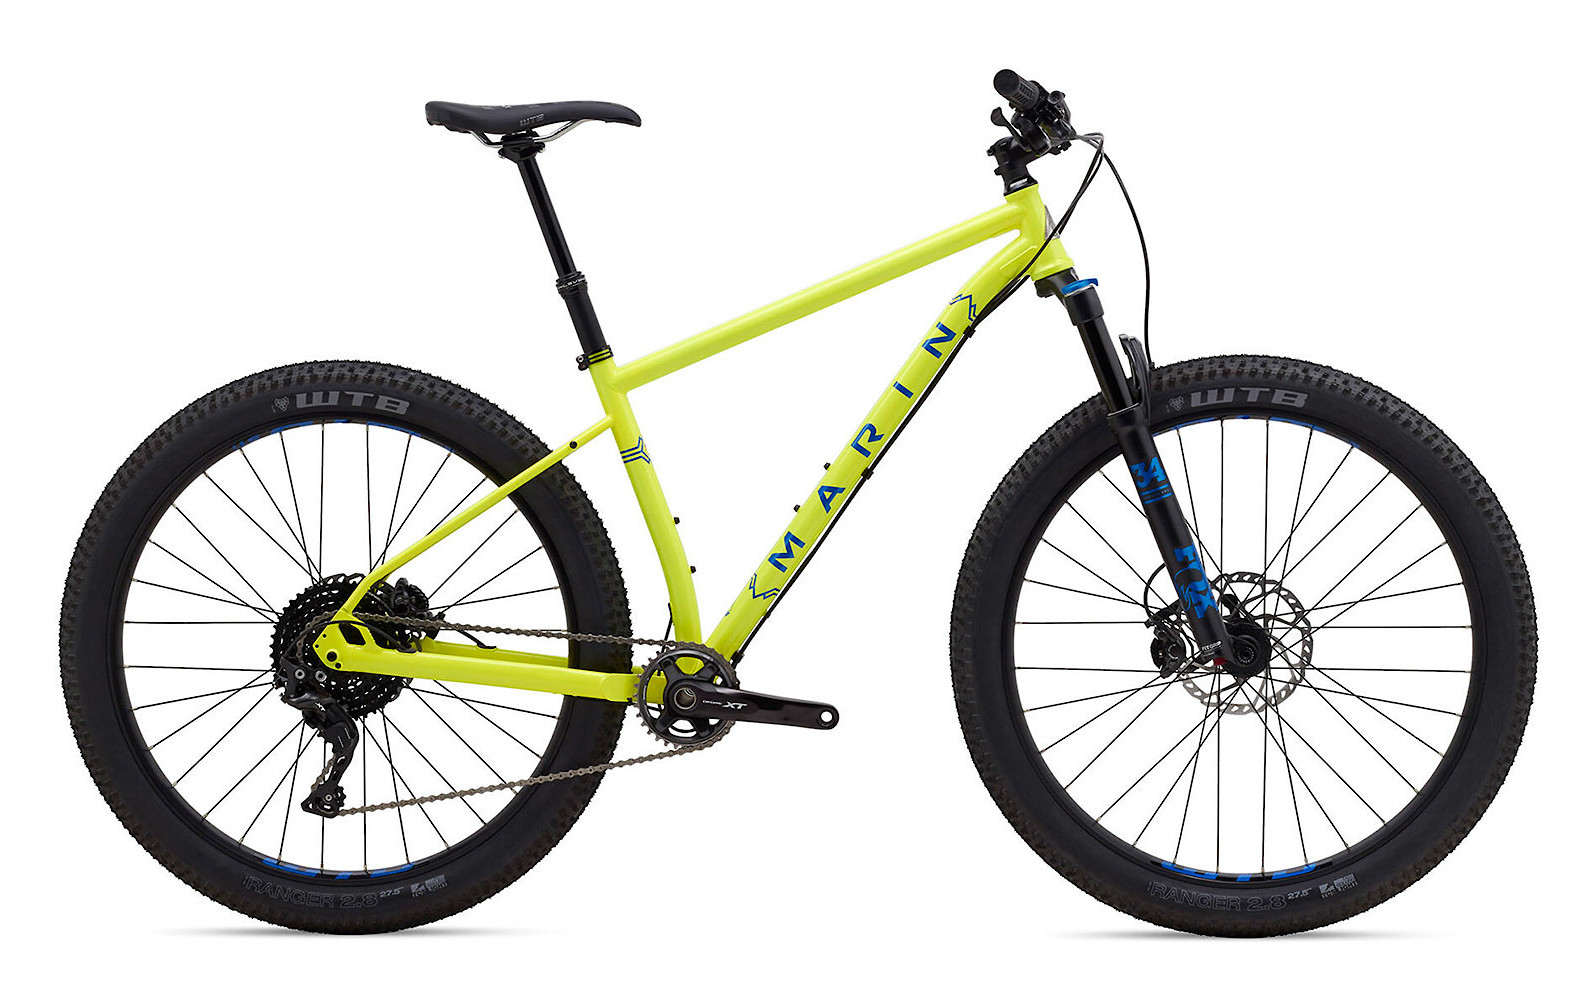 2019 Marin Pine Mountain 2 Bike